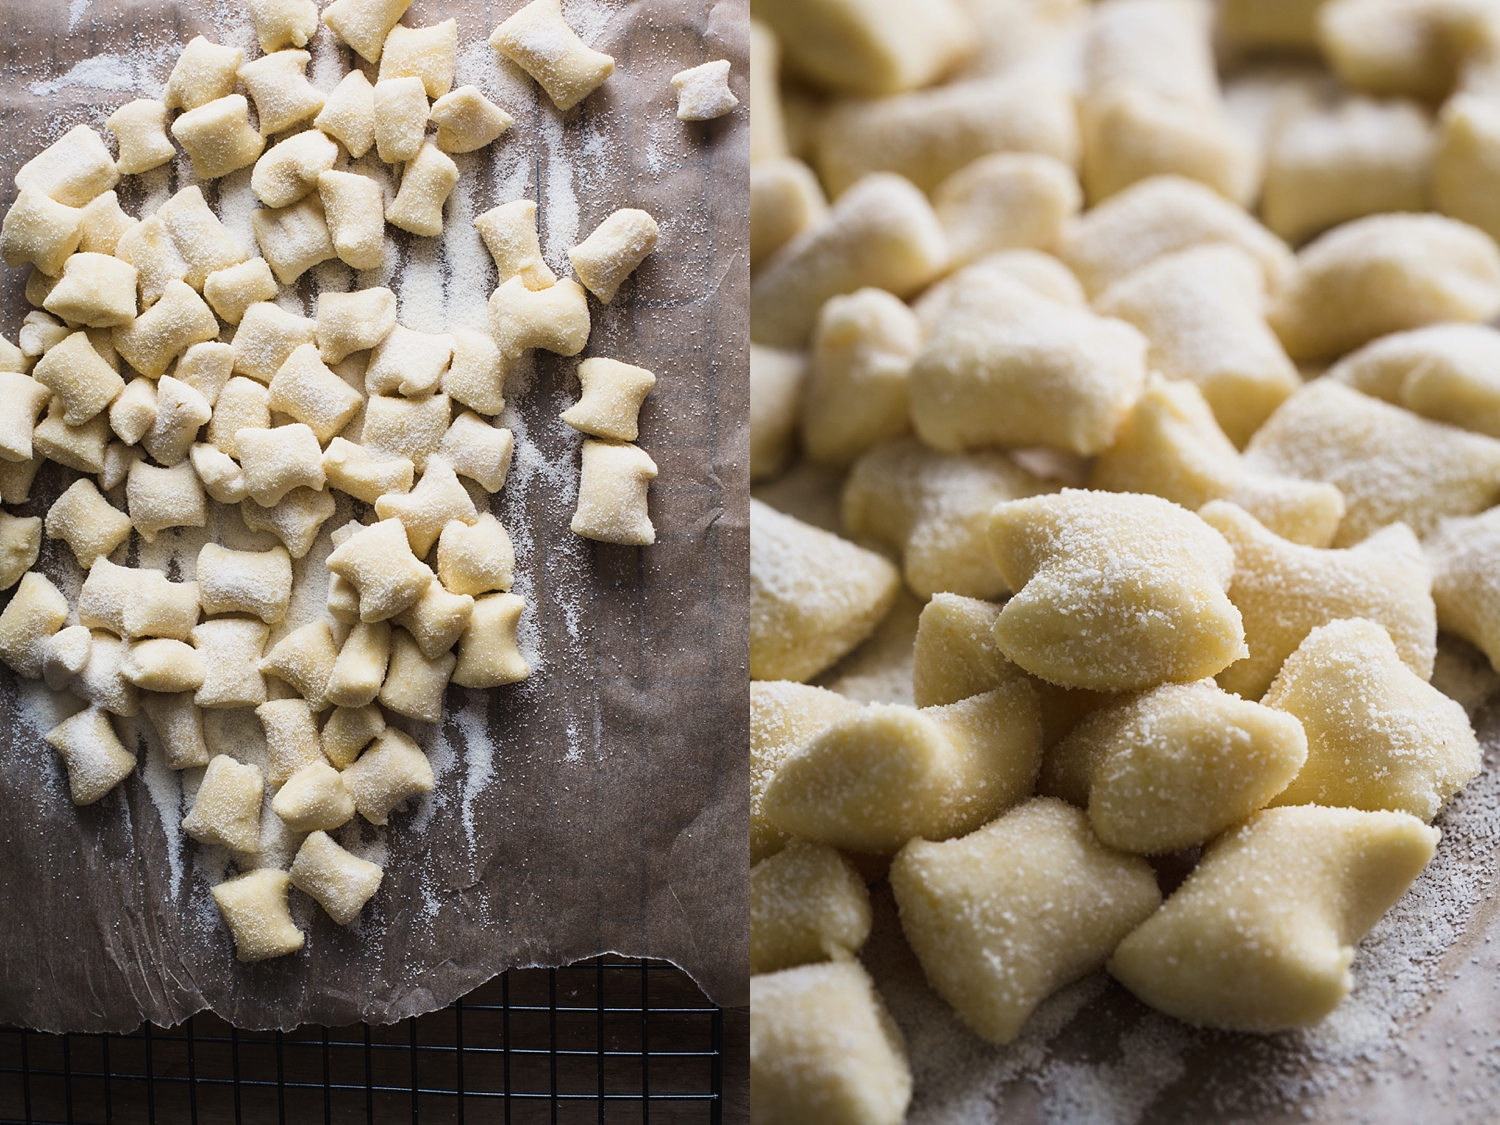 Ricotta-Gnocchi-home-made-food-photography_0179.jpg